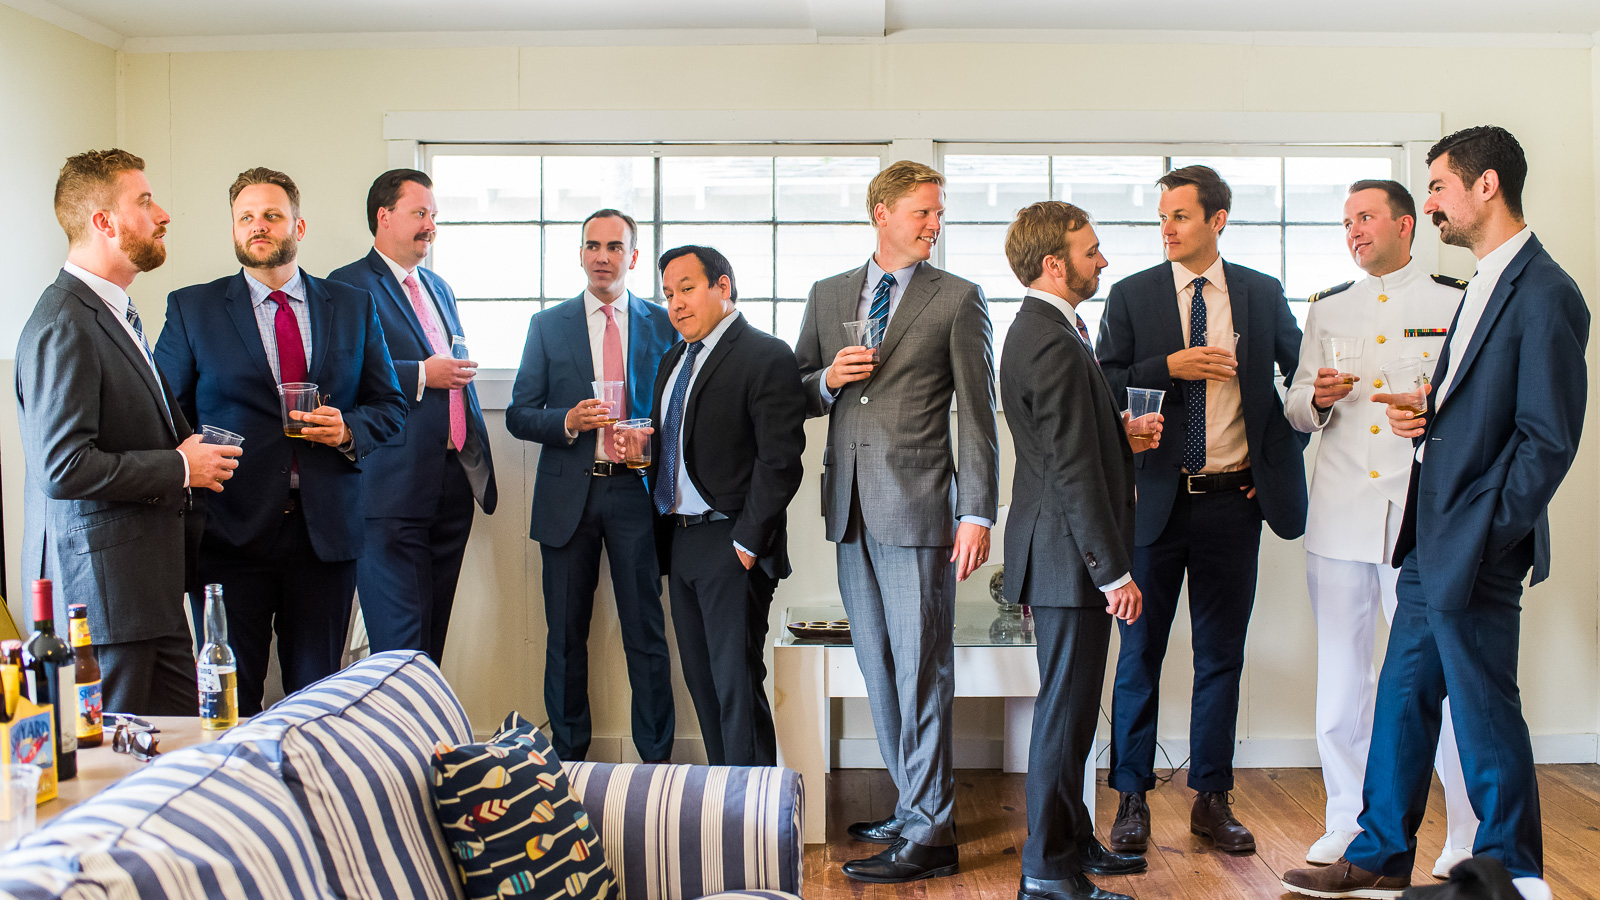 candid wedding photo groomsmen